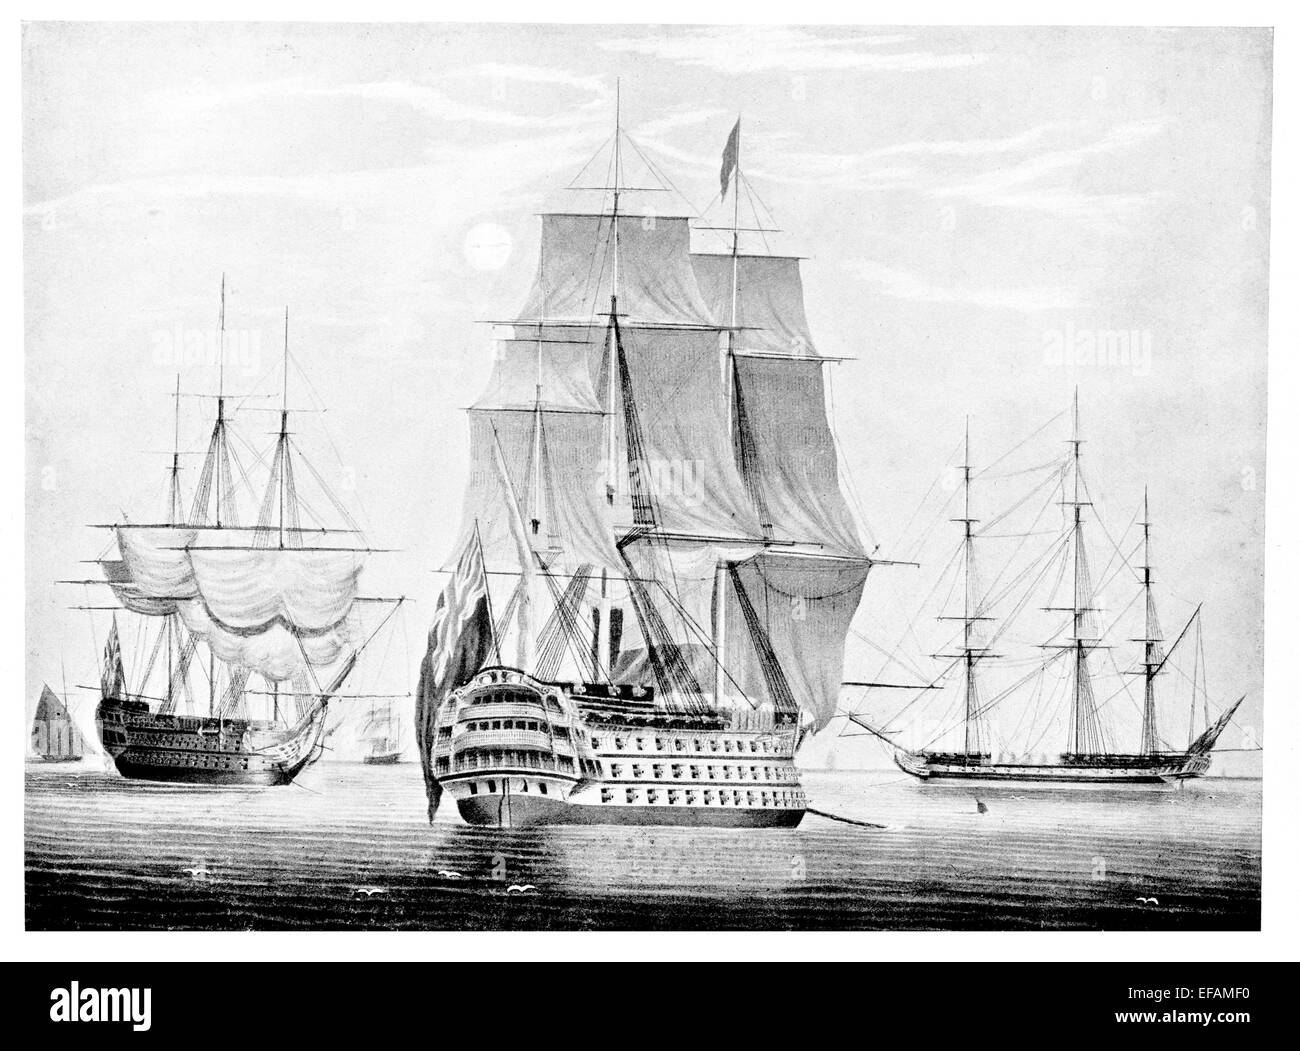 Ships at Anchor 1815 left to right a Cutter under sail. A line of Battle ship under sail and a large Frigate. - Stock Image